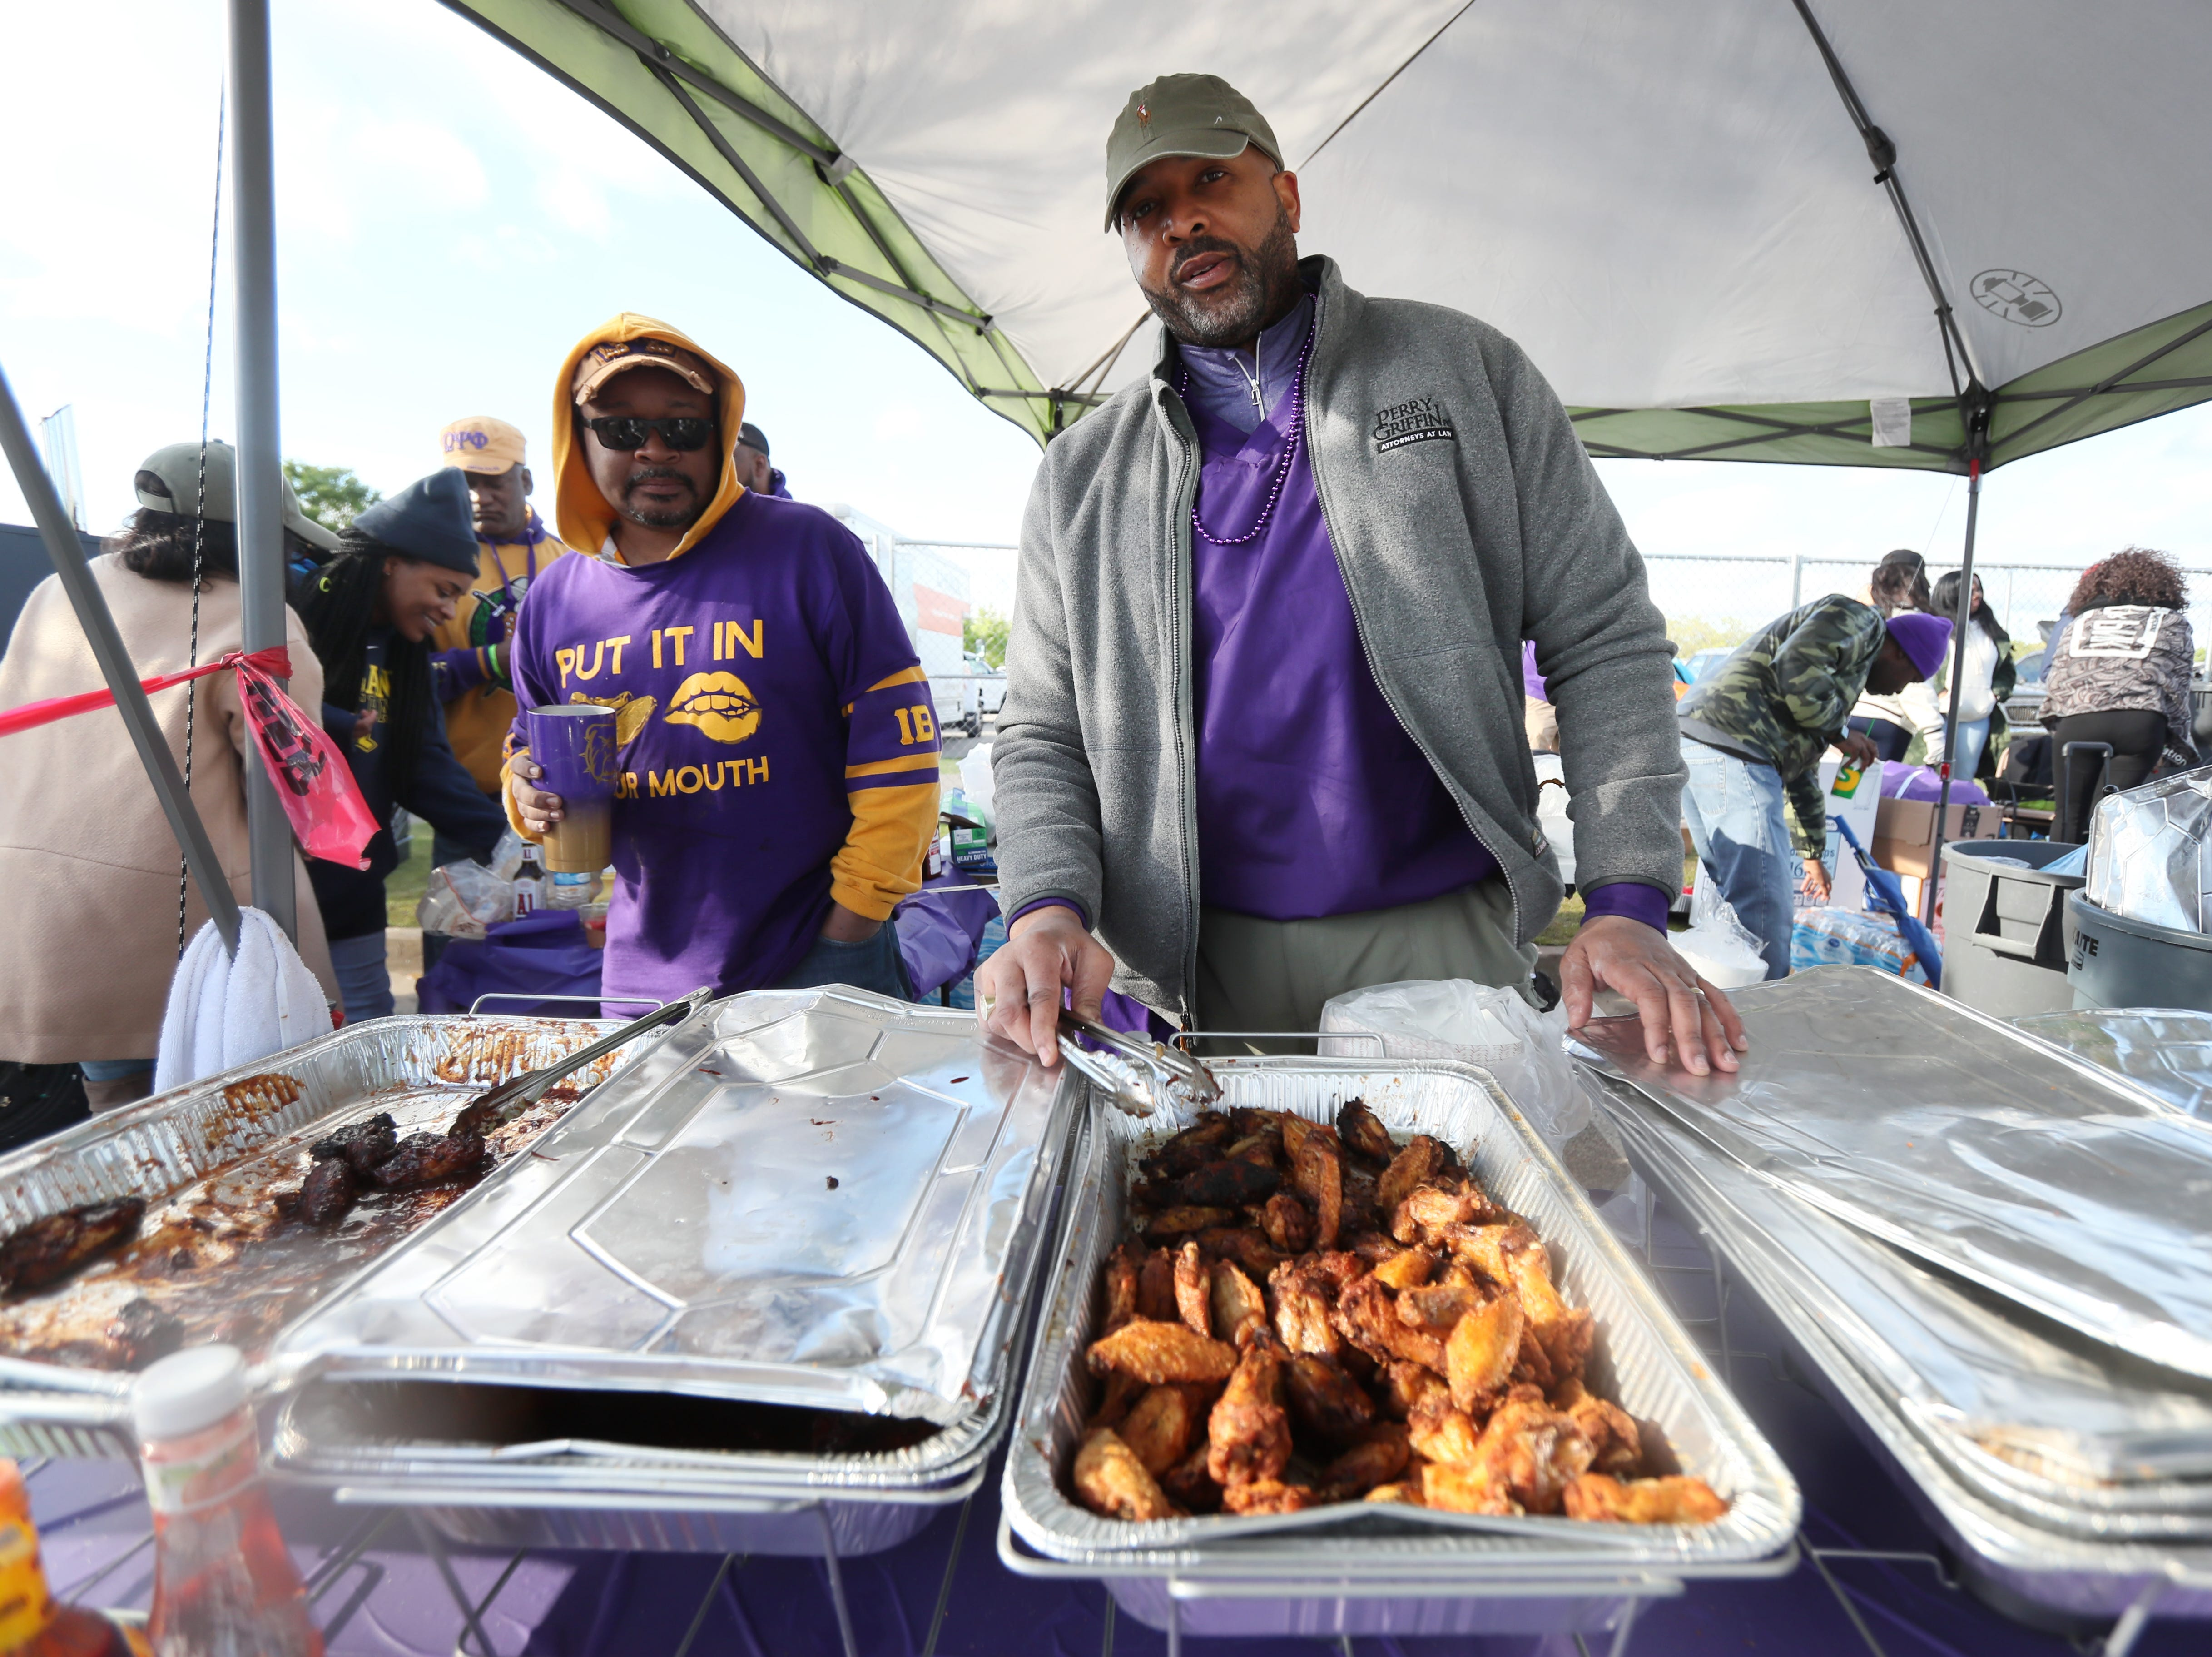 John Keith Perry serves up some food during the 17th Annual Southern Hot Wing Festival on Tiger Lane at Liberty Bowl Memorial Stadium on Sunday, April 14, 2019.